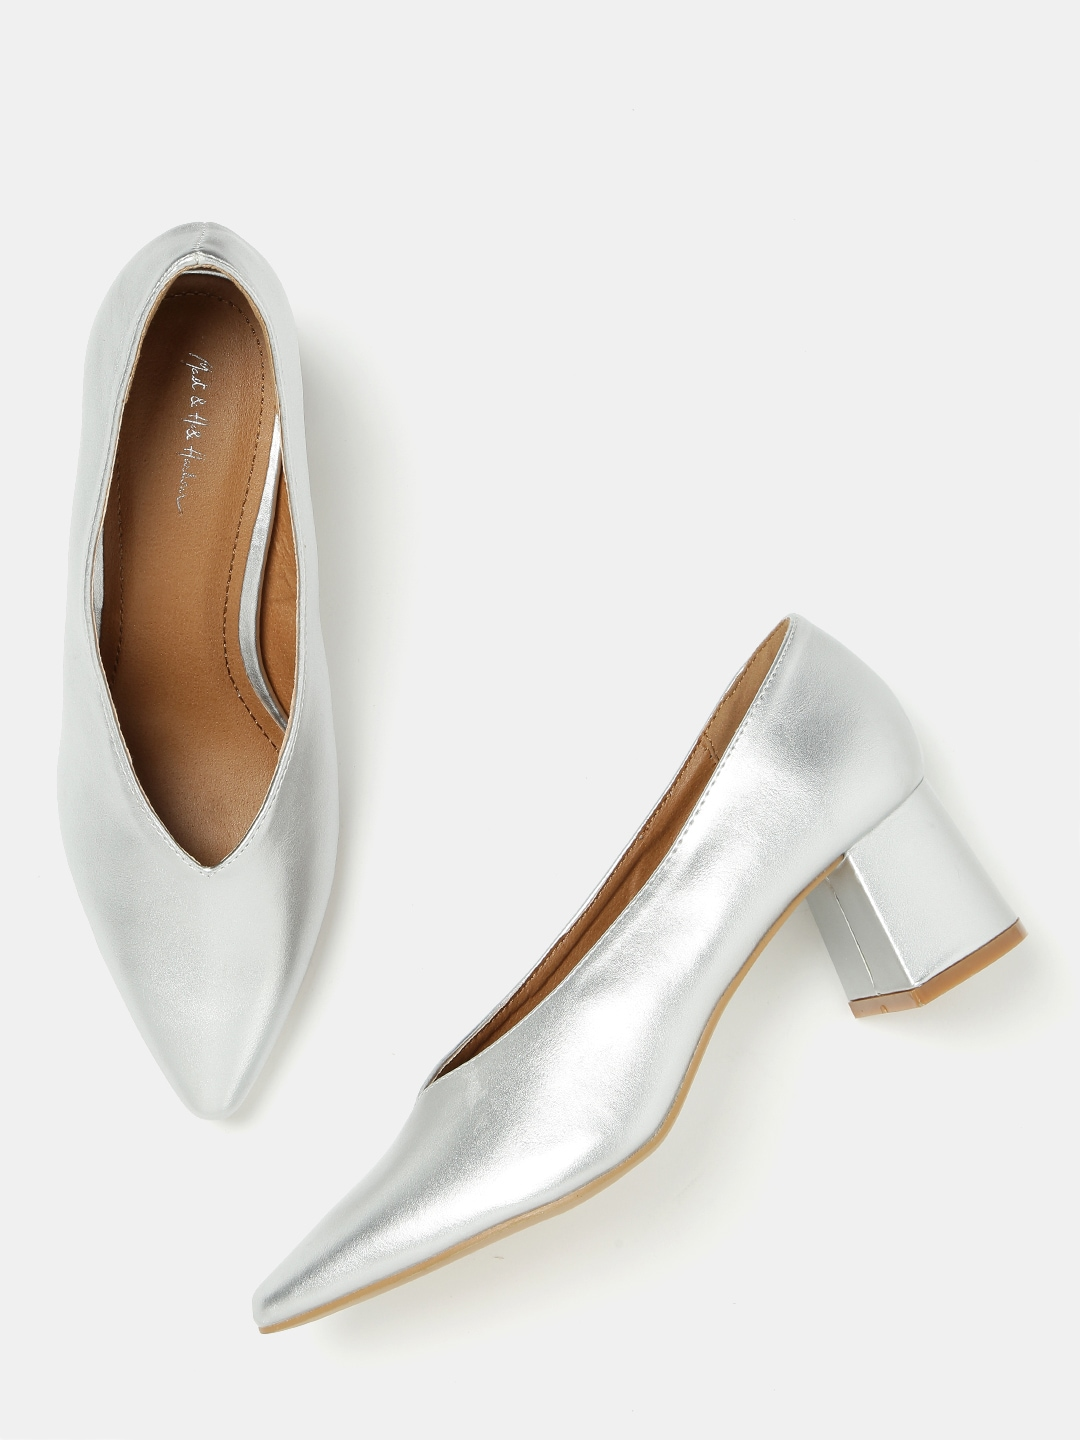 127e75ab9e8 Silver Heels - Buy Silver Heels Online in India